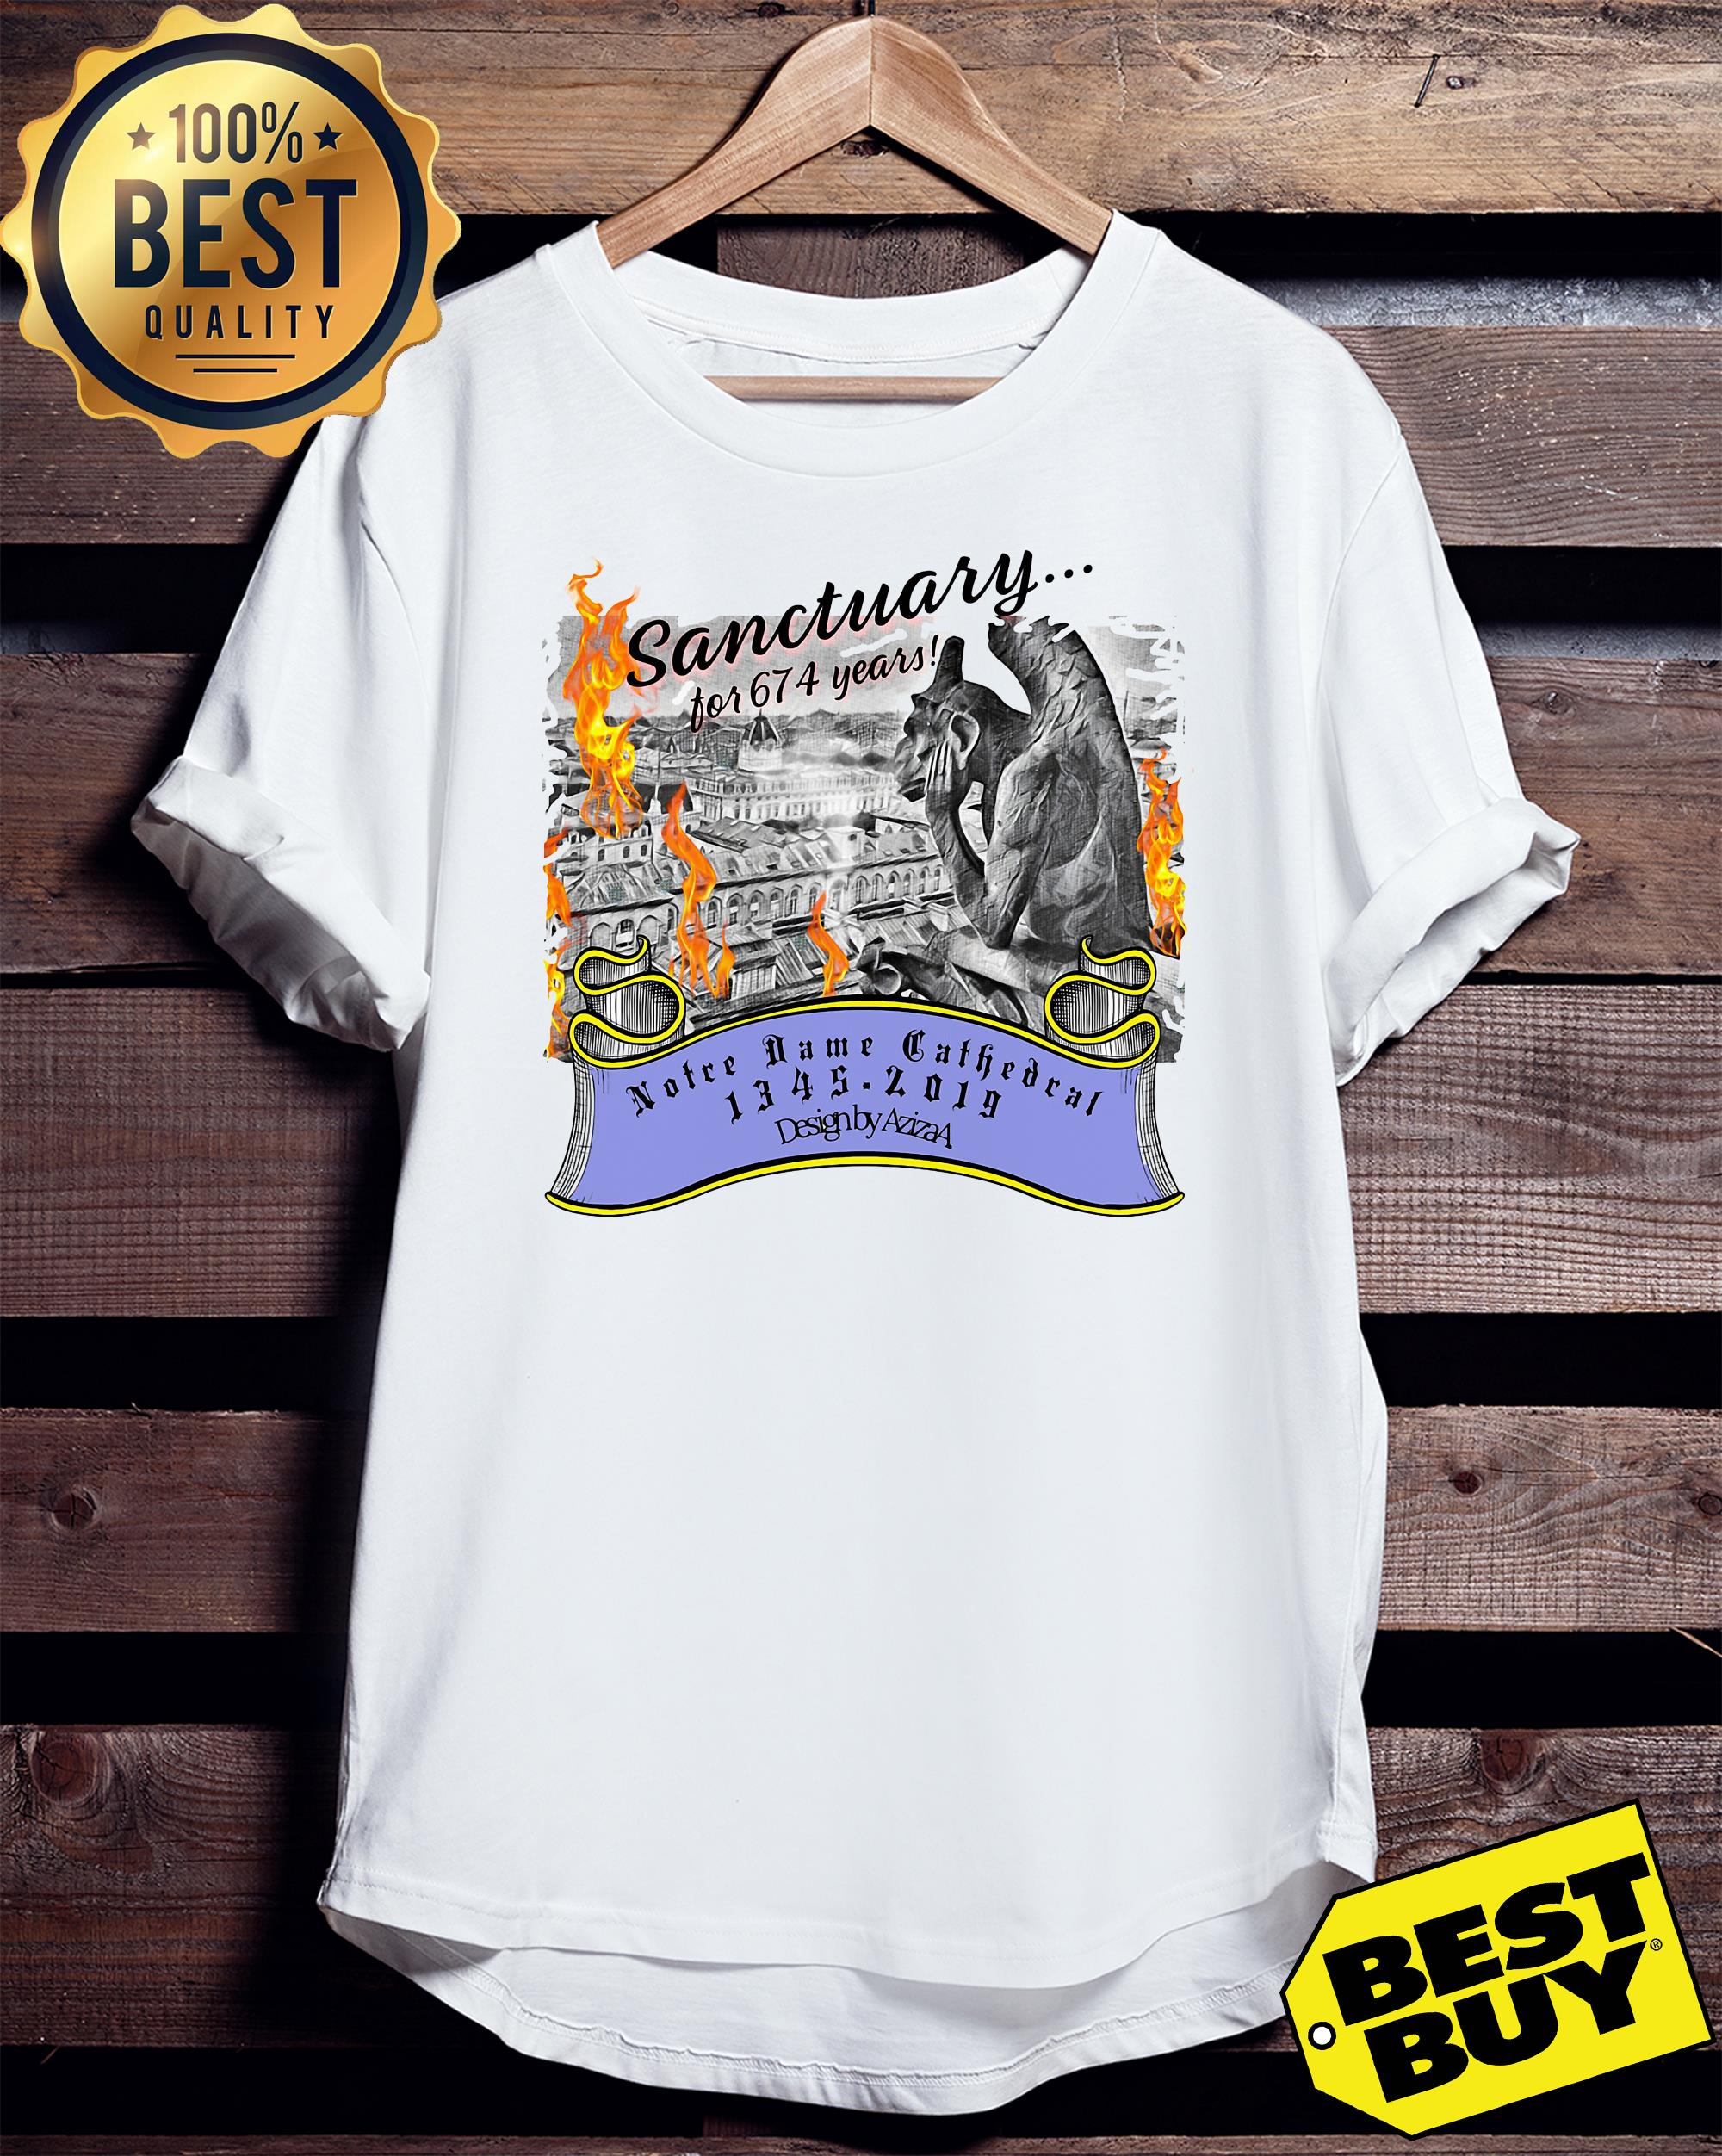 Sanctuary for 674 years Notre Dame Cathedral 1345-2019 Paris ladies tee